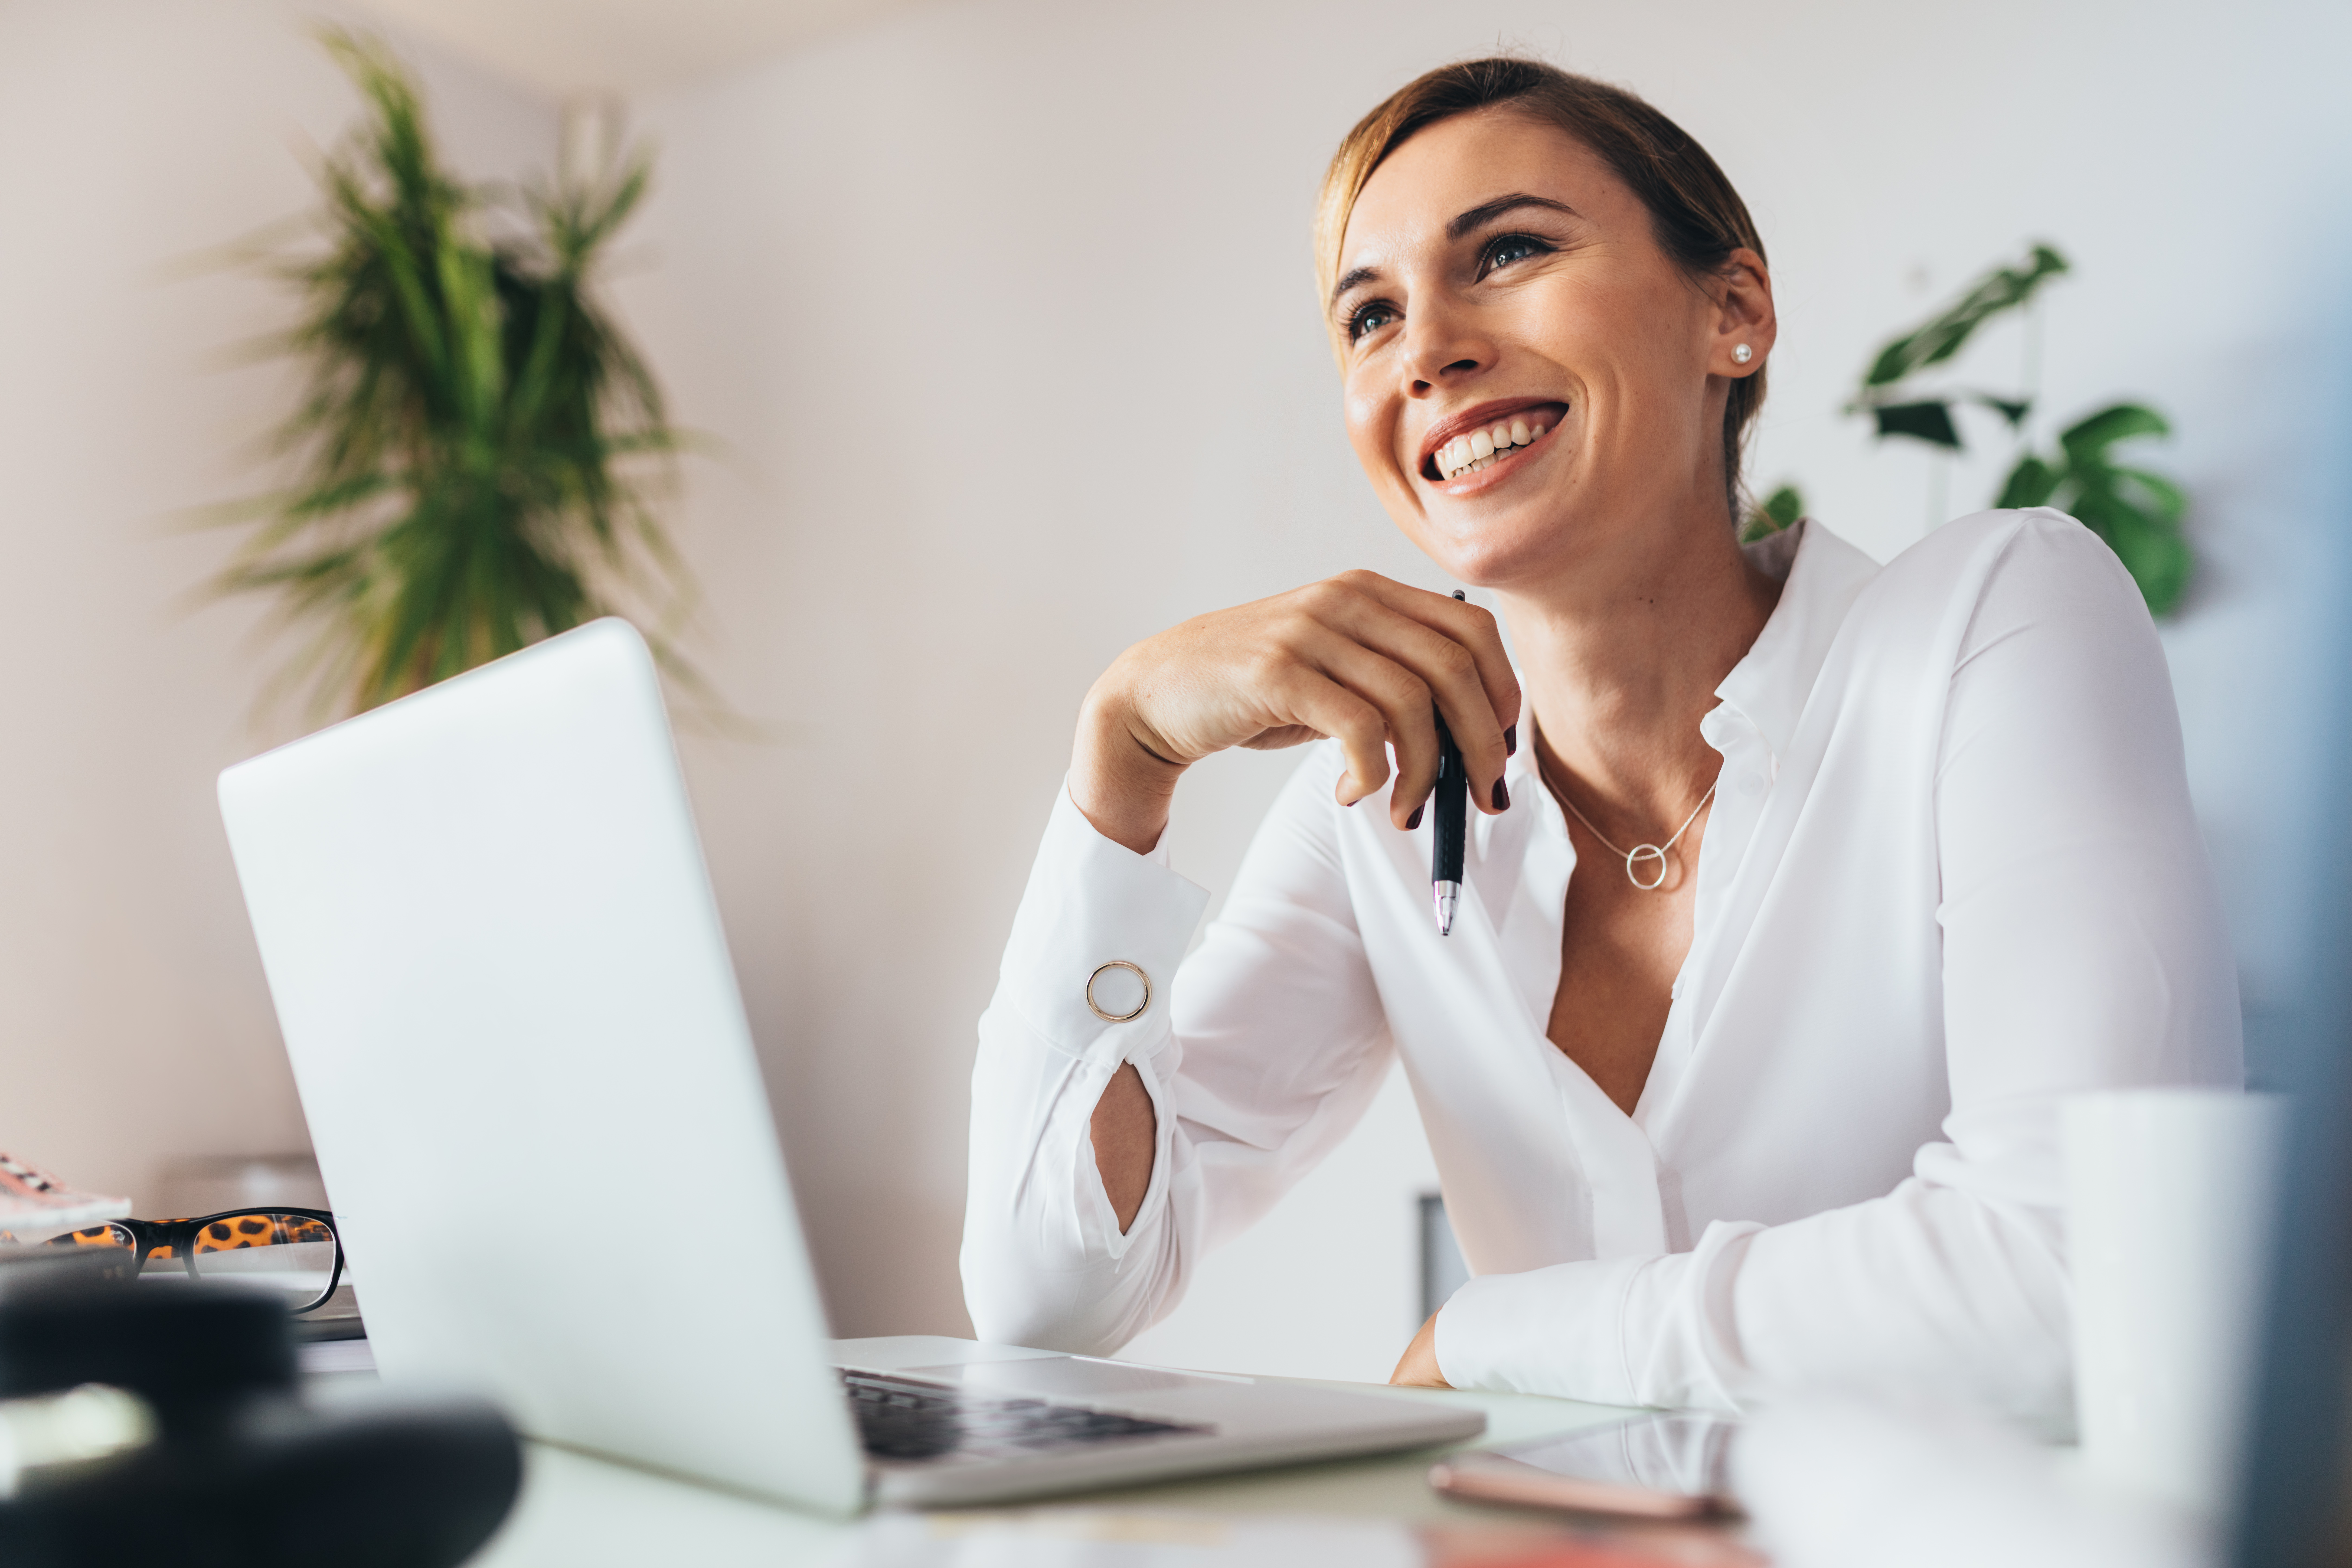 Smiling business woman sitting at her desk in office. Woman holding a pen with a laptop computer on her desk.